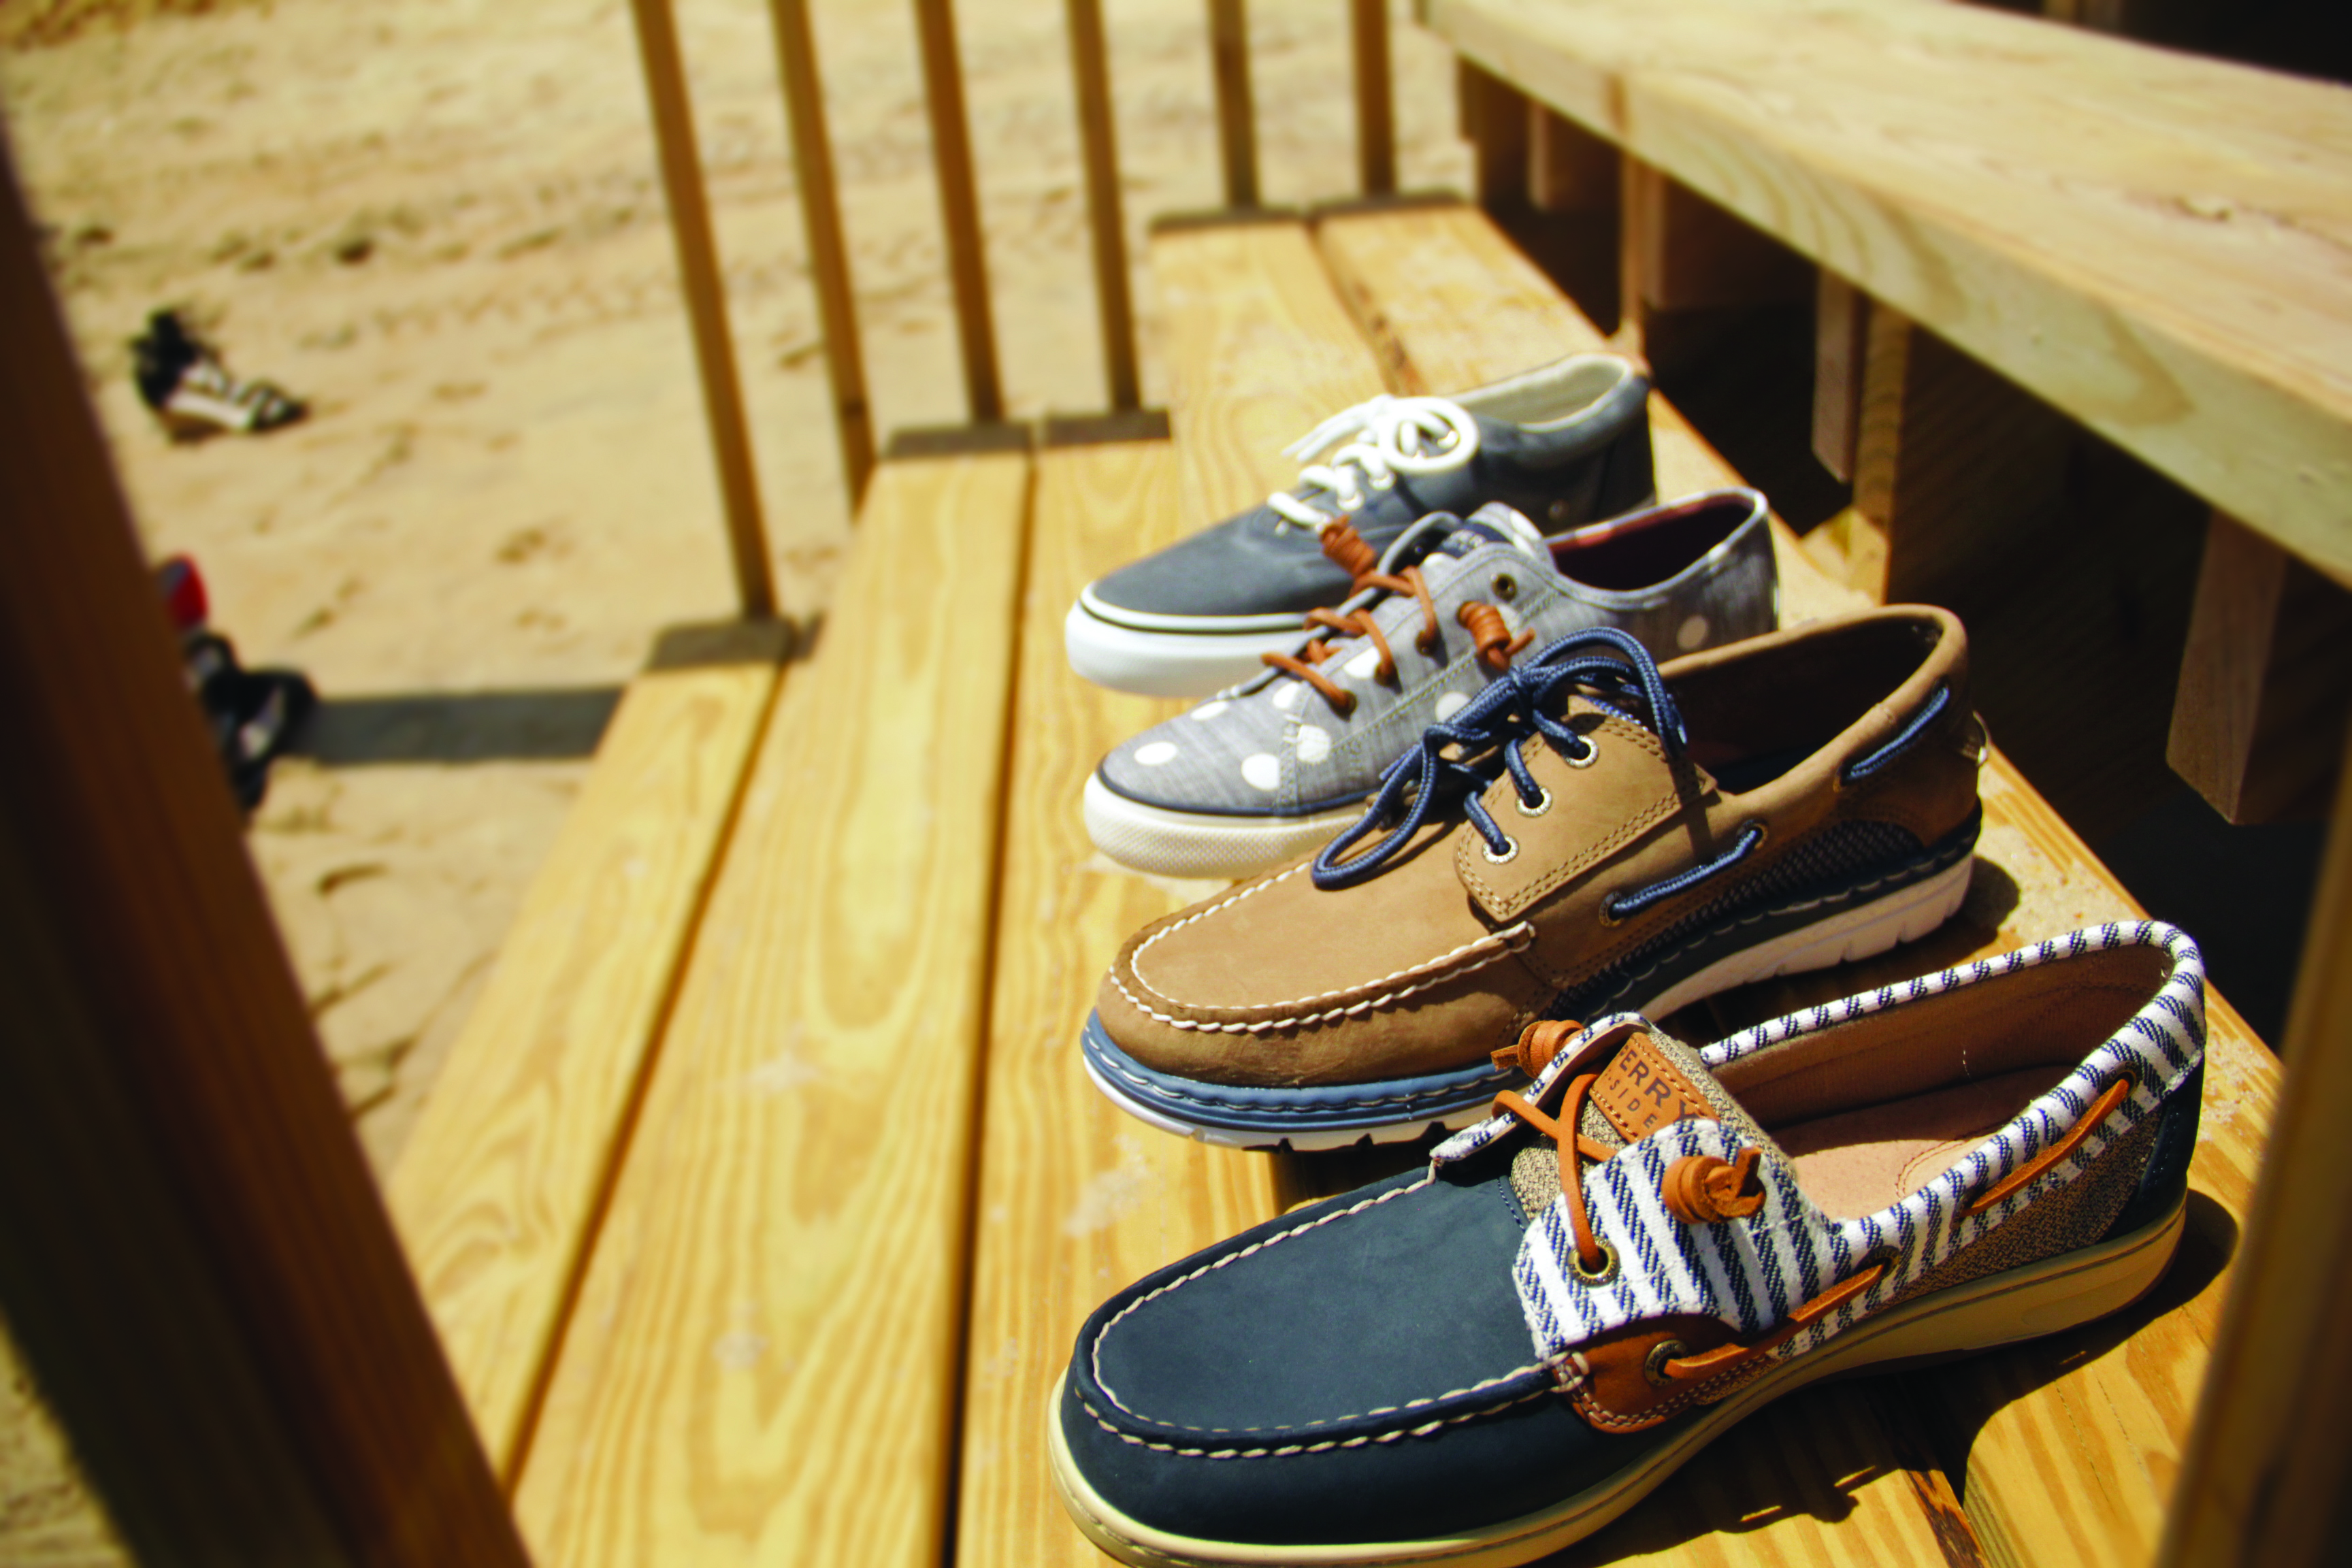 Sperry Top-siders at Grays